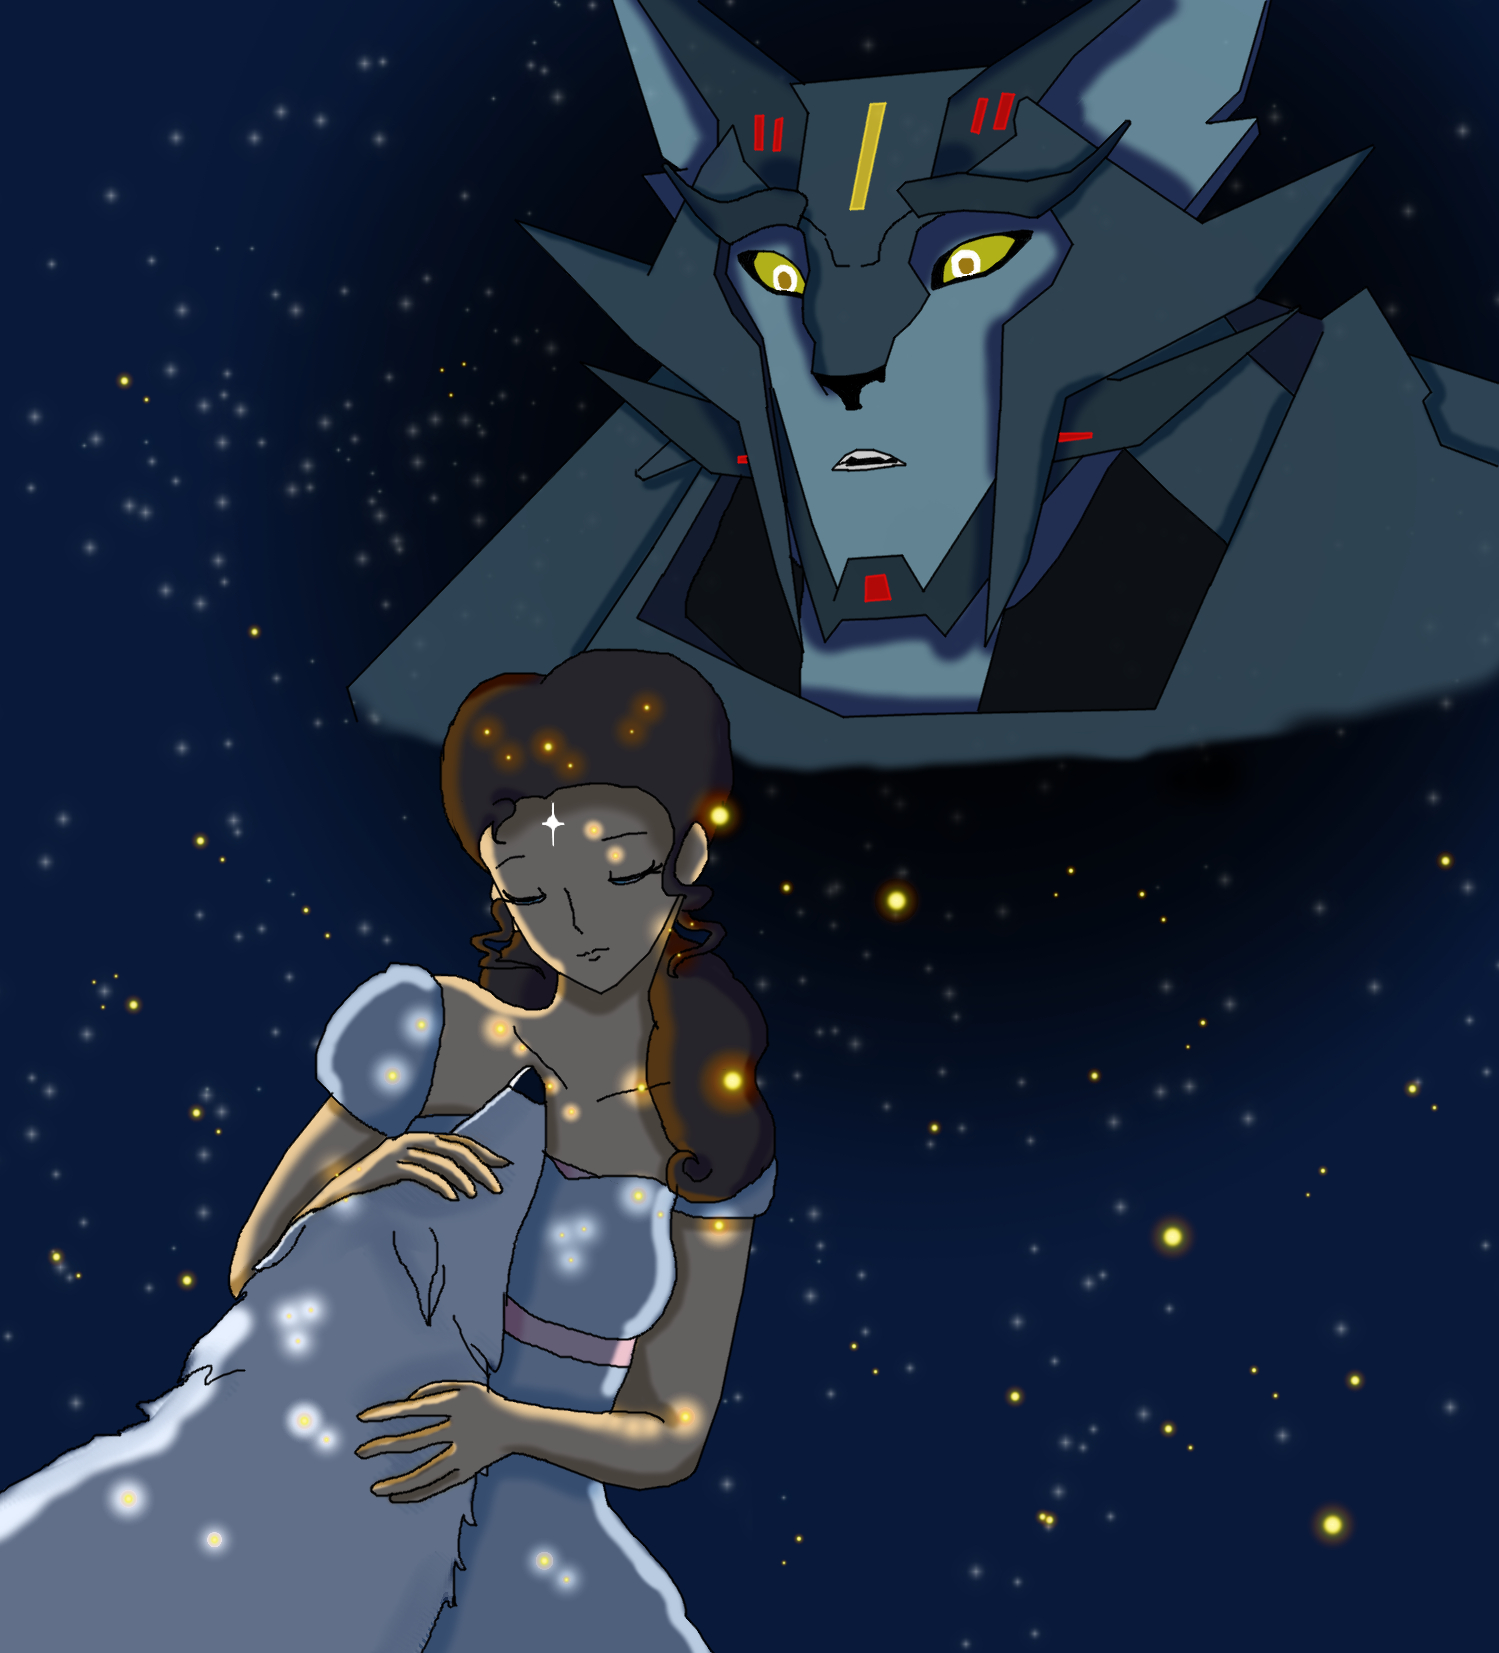 Fanfiction on TransformersRolePlay - DeviantArt